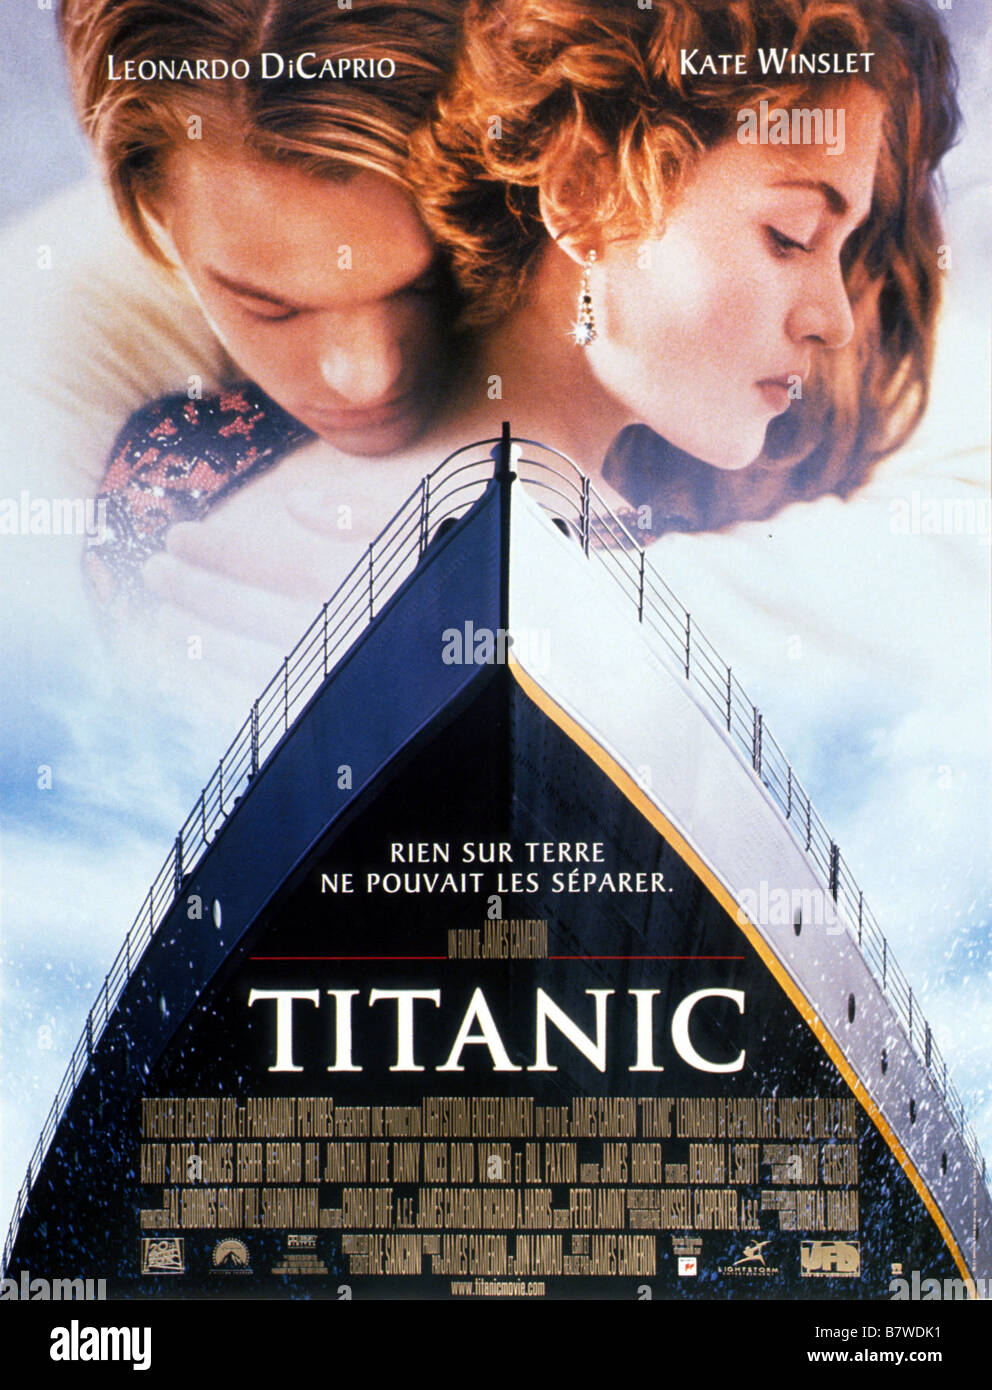 an analysis of the cover box image for the movie titanic by james cameron Commercial analysis before titanic ' s  titanic held the record for box office gross  james cameron's recreation of the 1912 sinking of the 'unsinkable' liner.